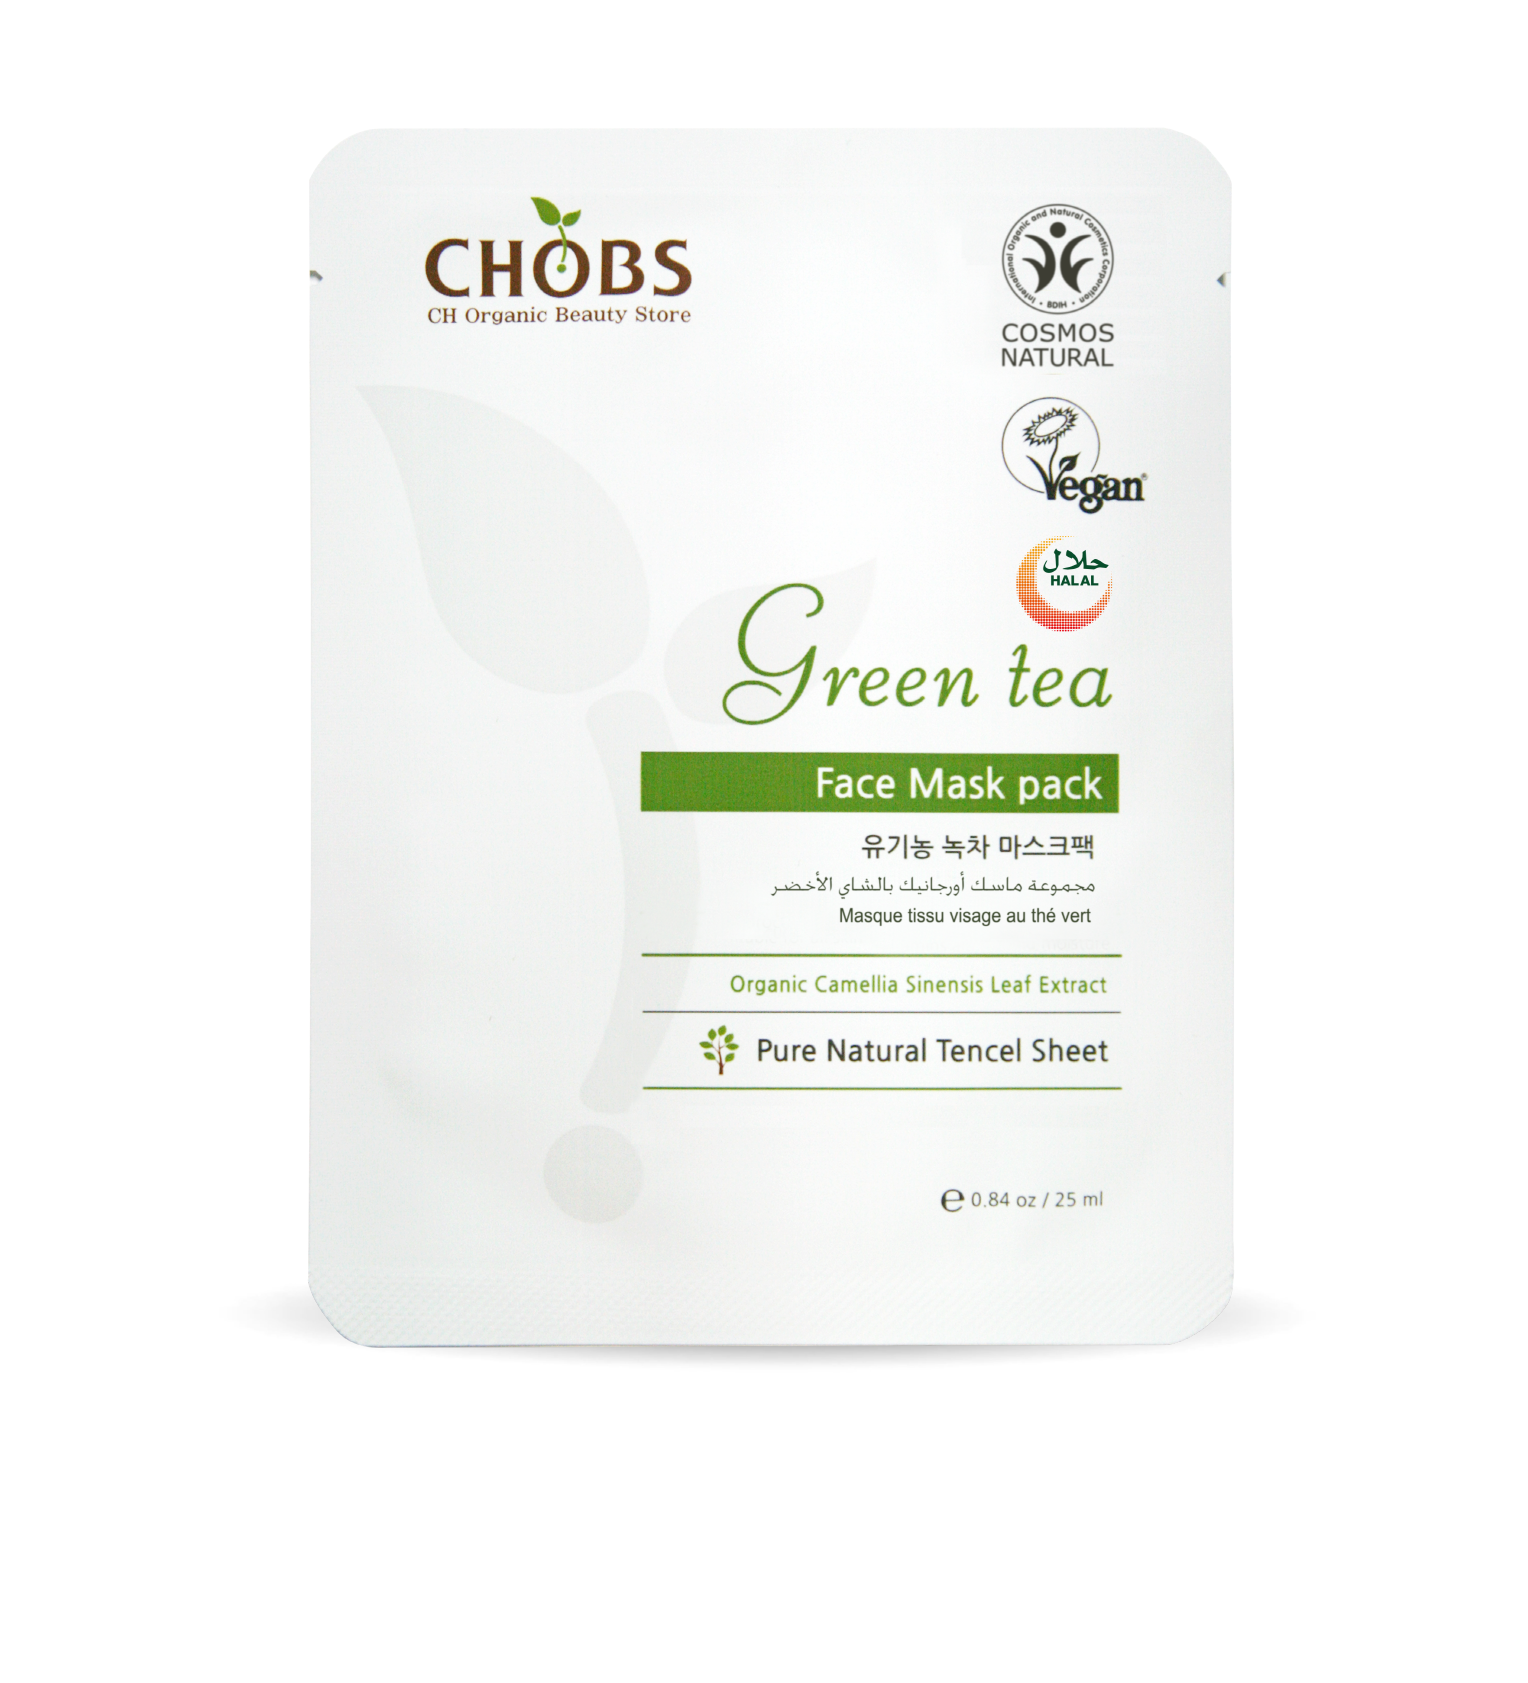 CHOBS Organic Green Tea Mask Pack 25ml